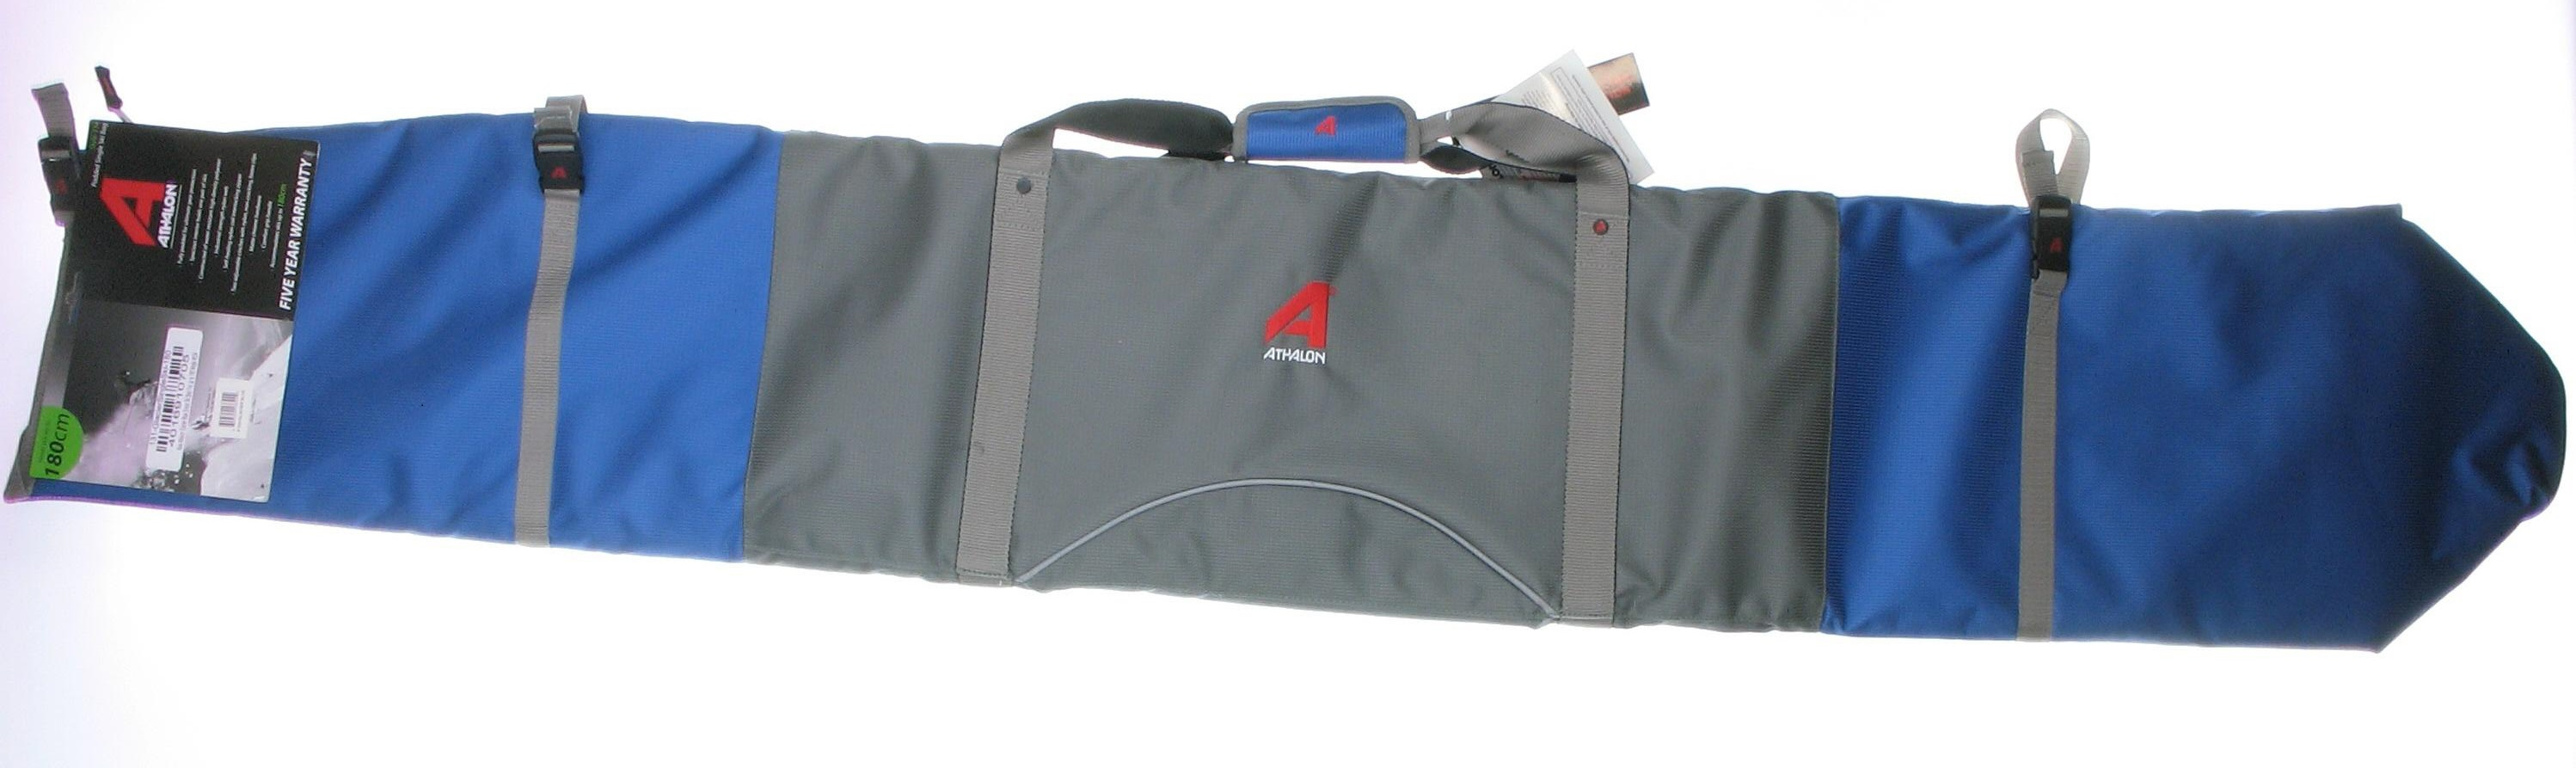 New Athalon Padded Single Ski Bag by Athalon Sportgear